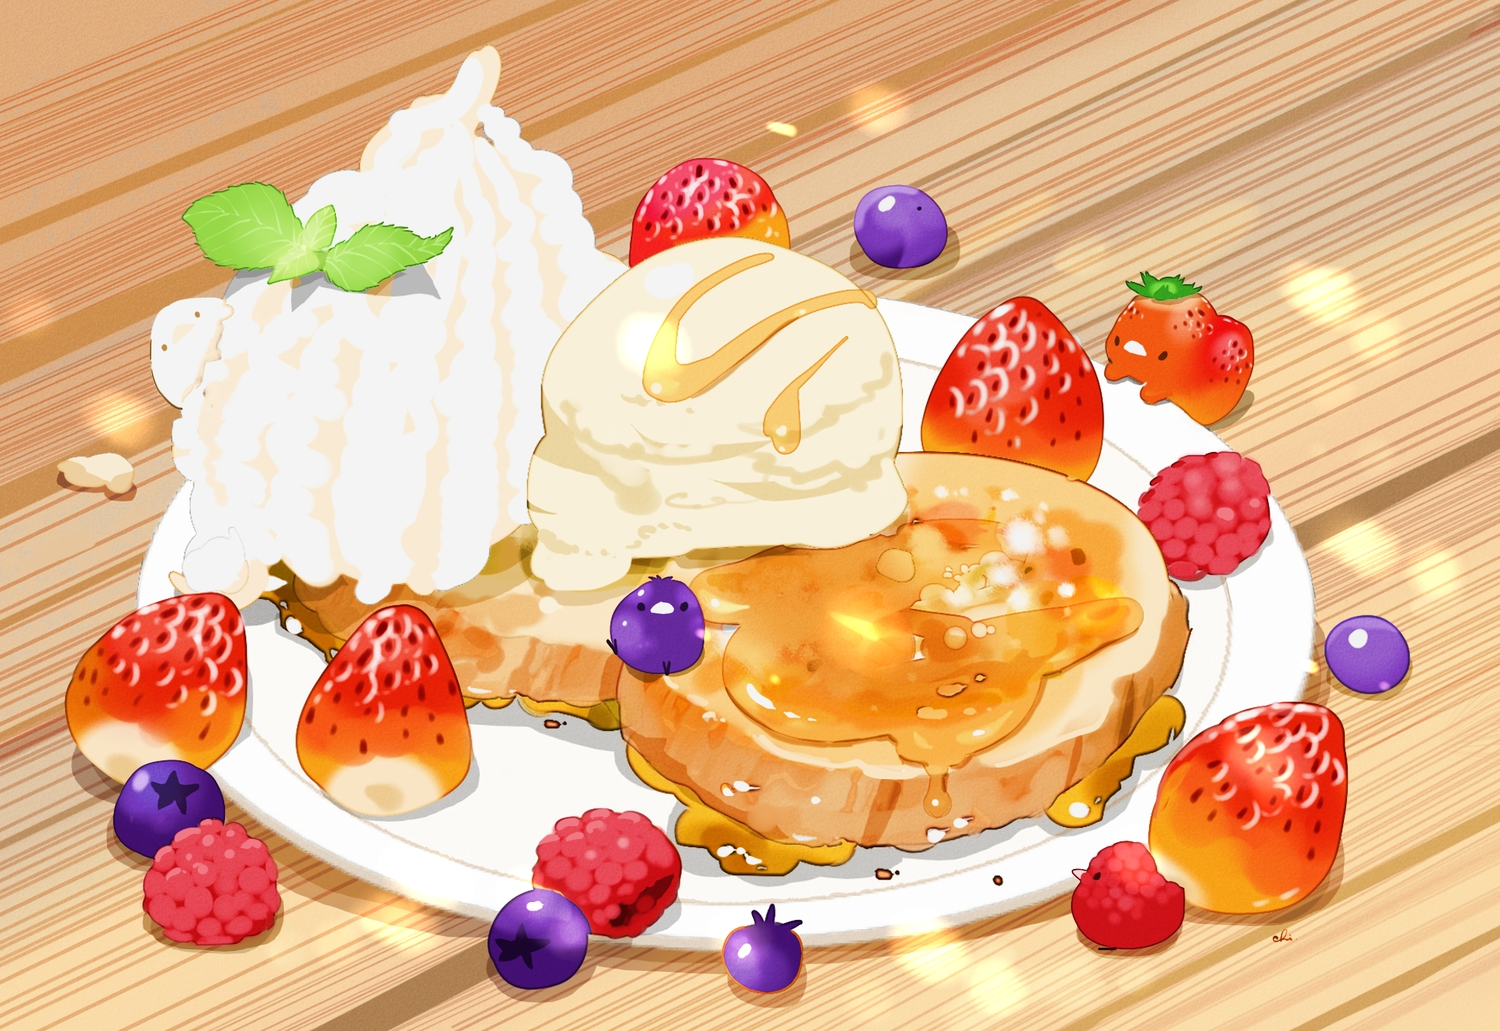 animal bird cake chai_(artist) food fruit ice_cream original signed strawberry